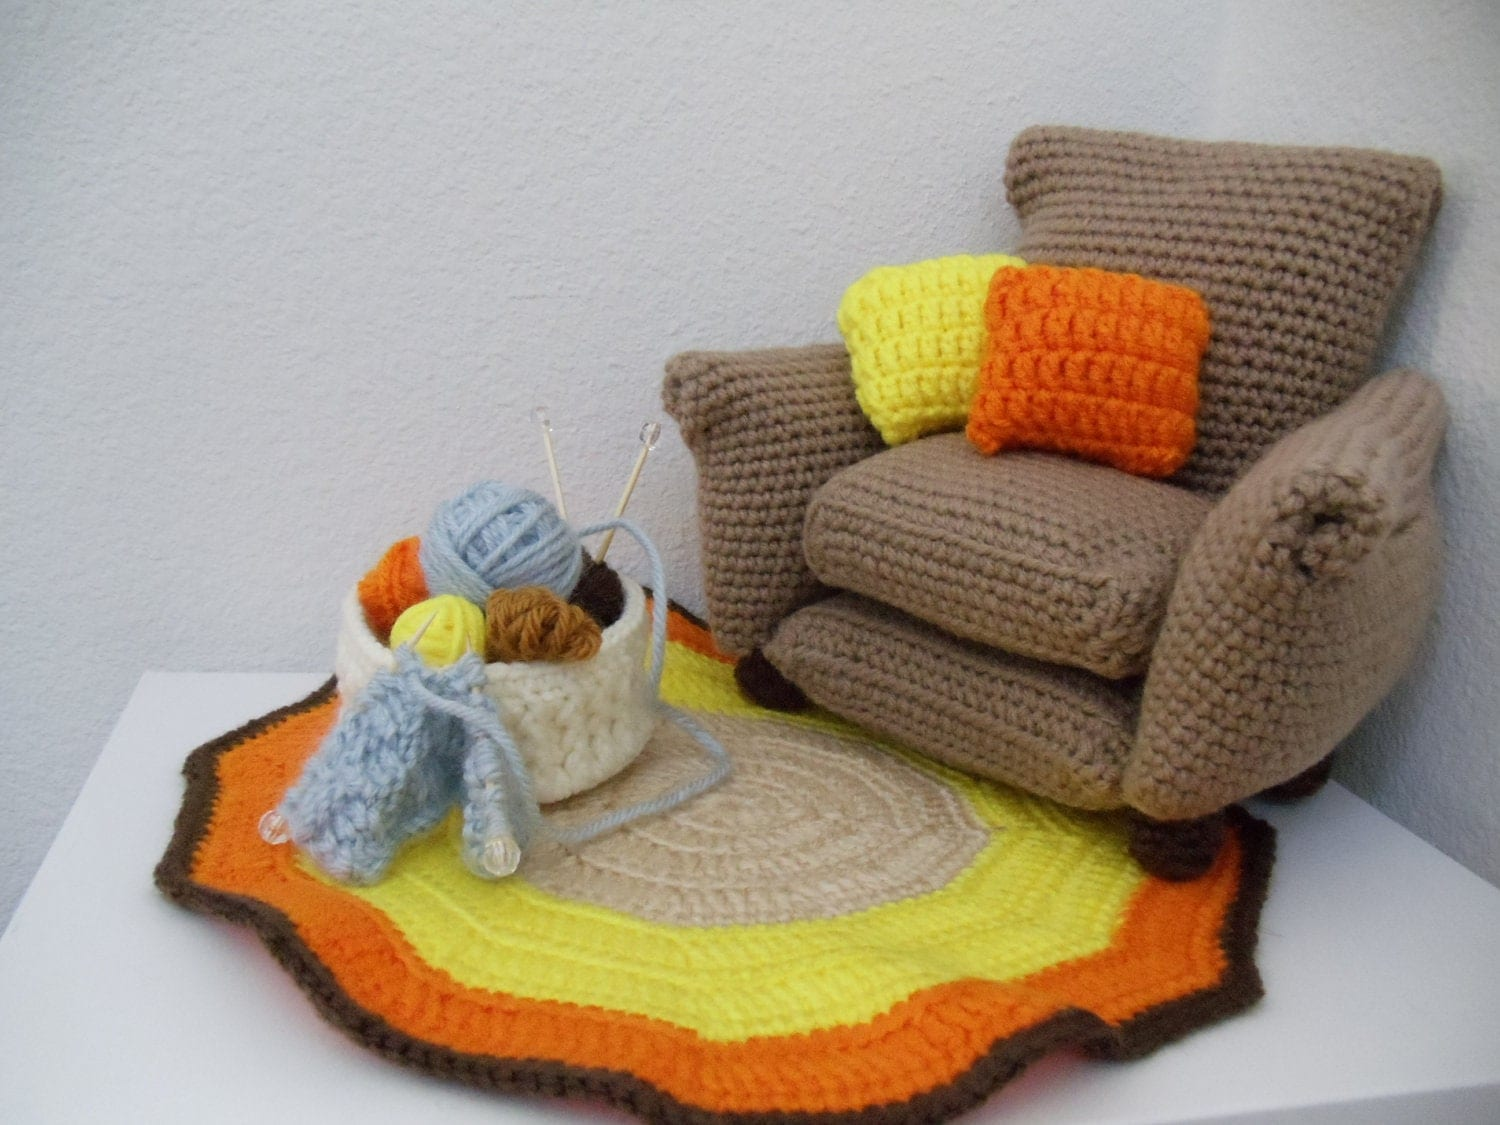 Amigurumi Doll House : Unavailable Listing on Etsy